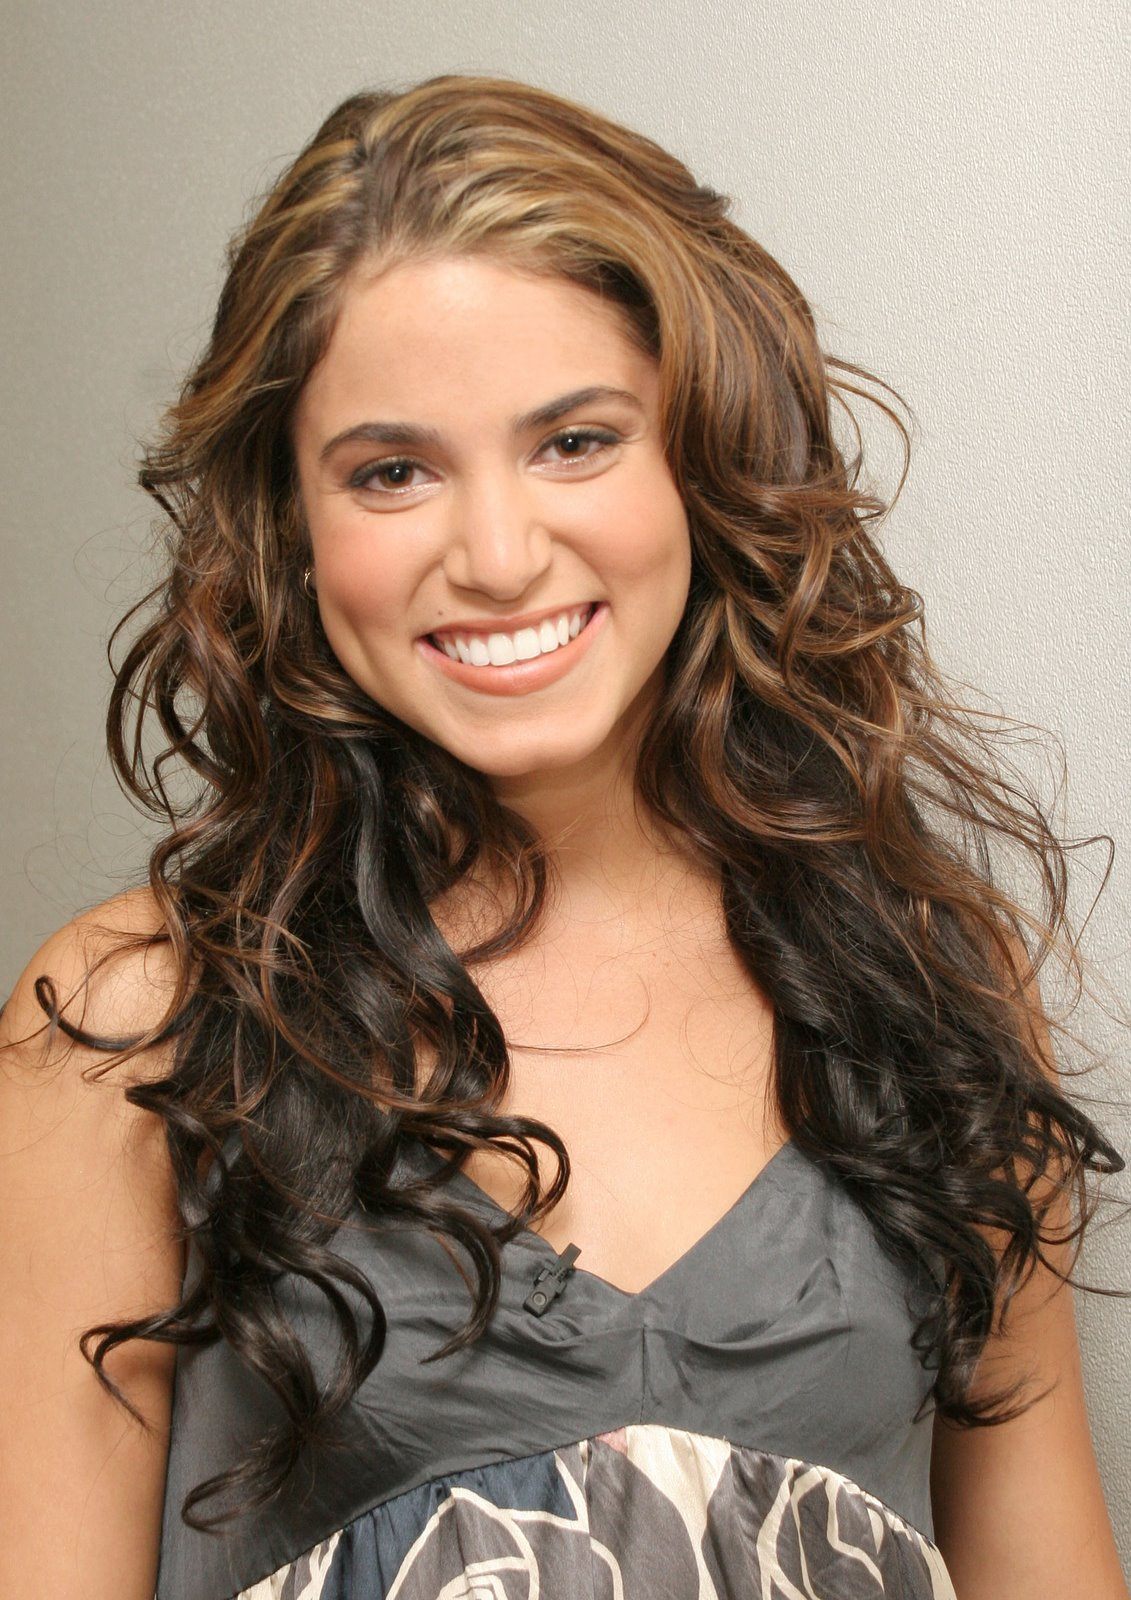 nikki reed photos